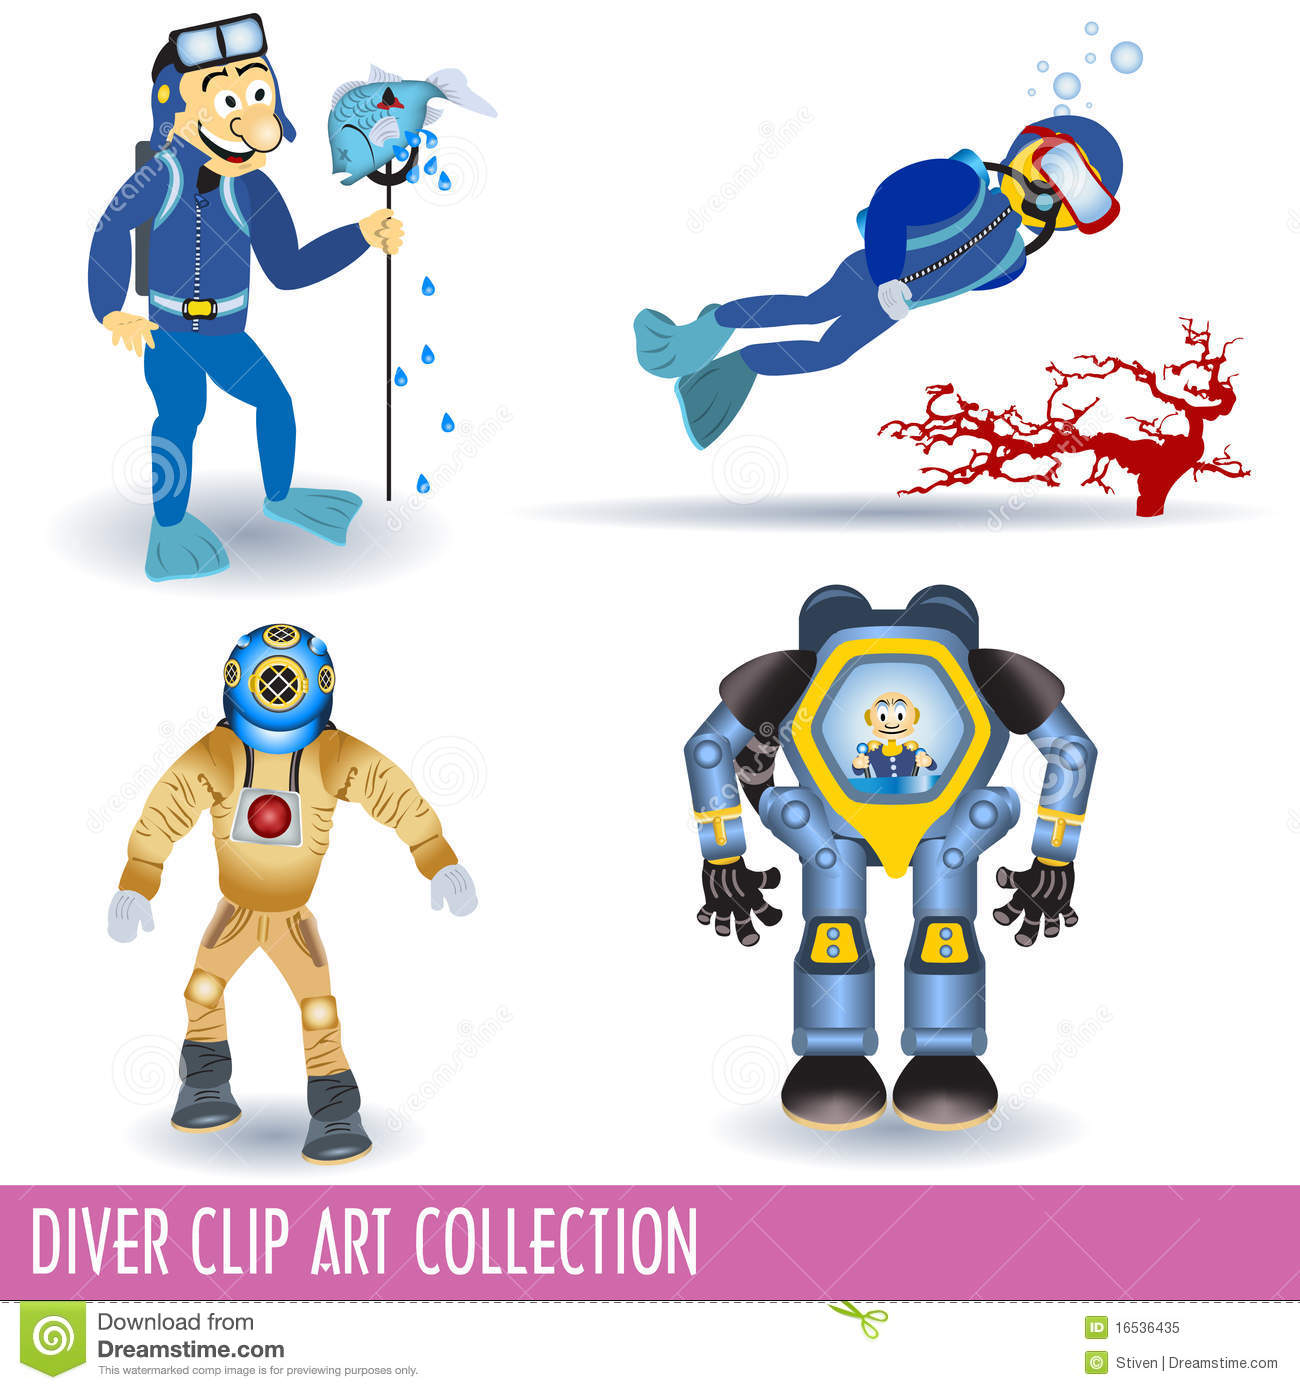 Diver Clip Art Collection Royalty Free Stock Photo.